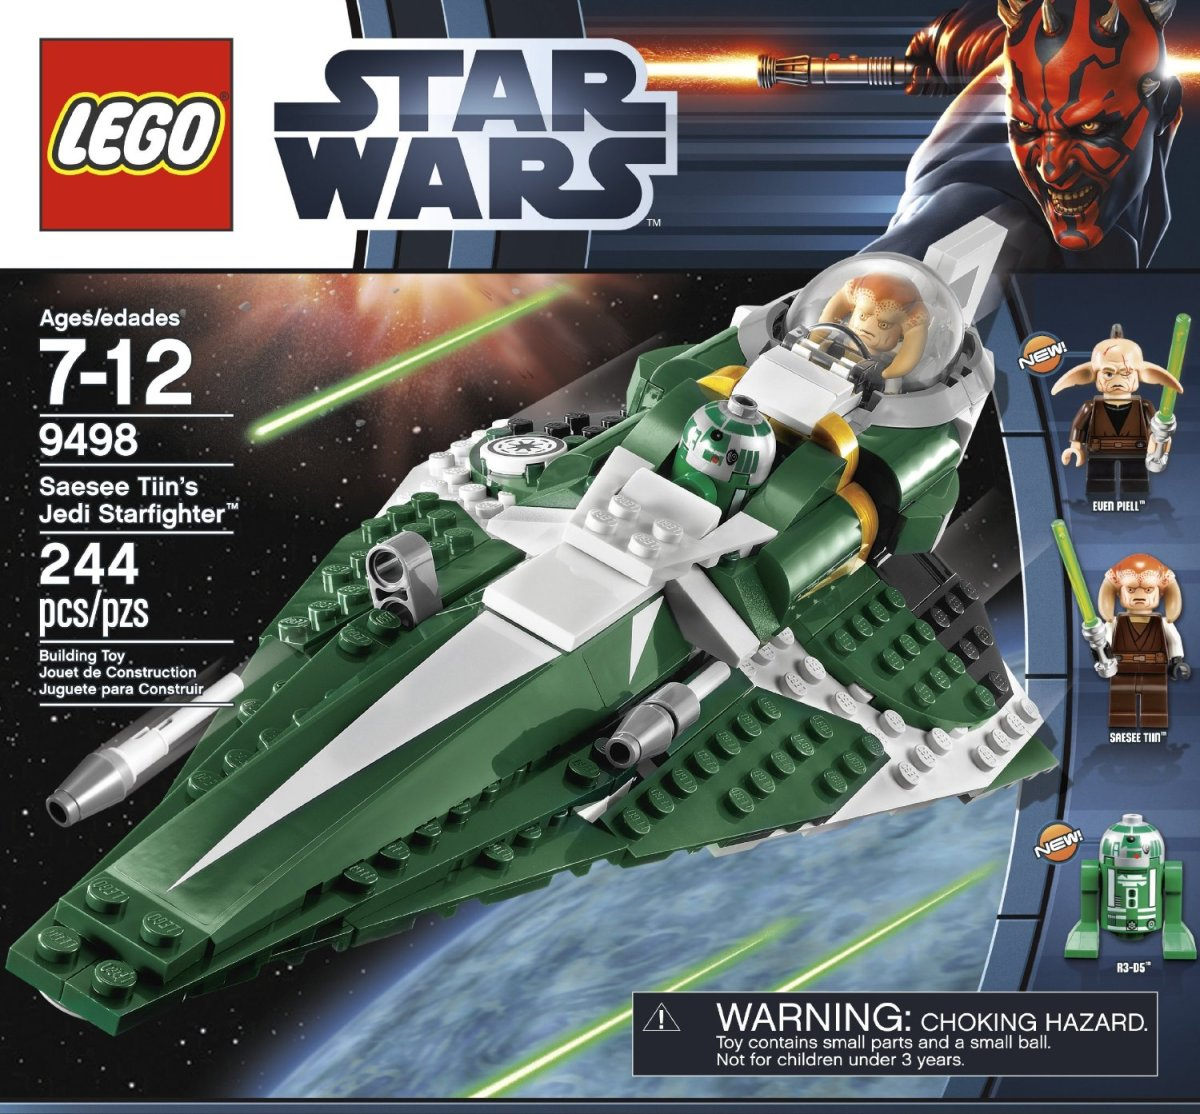 LEGO Star Wars Saesee Tiin's Jedi Starfighter 9498 Box